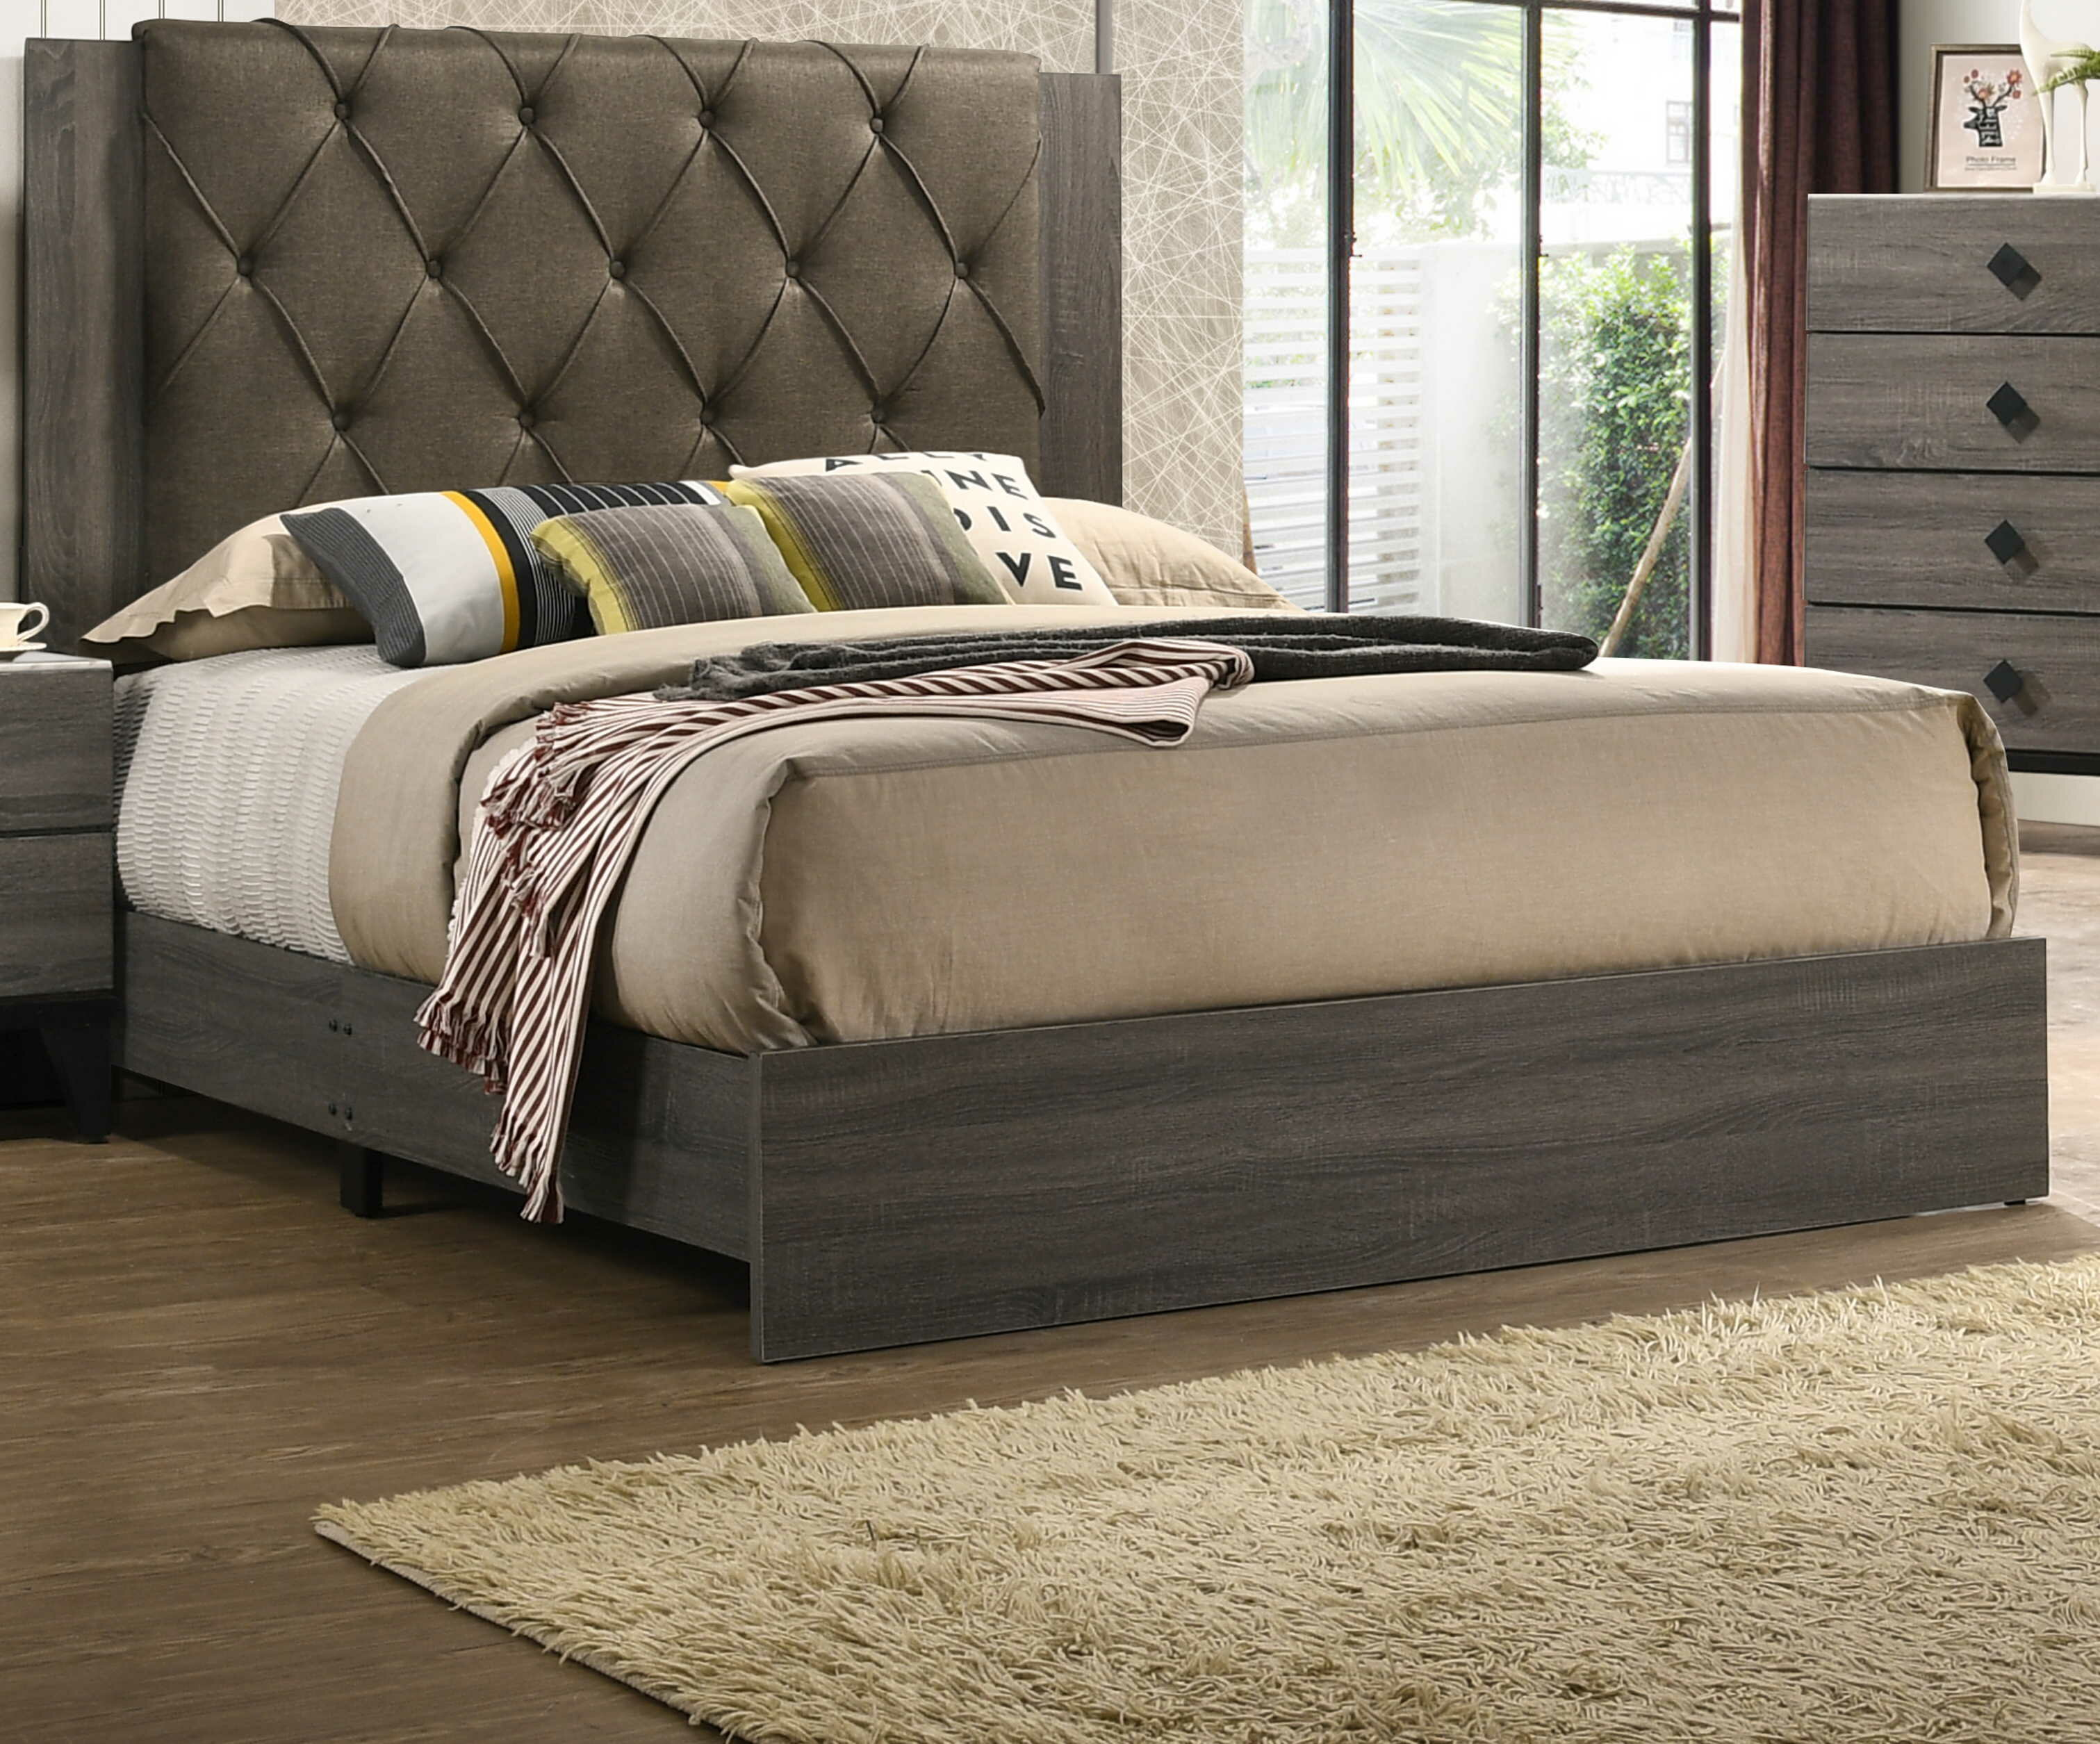 Cozzy Design Junayd Tufted Standard Bed Wayfair